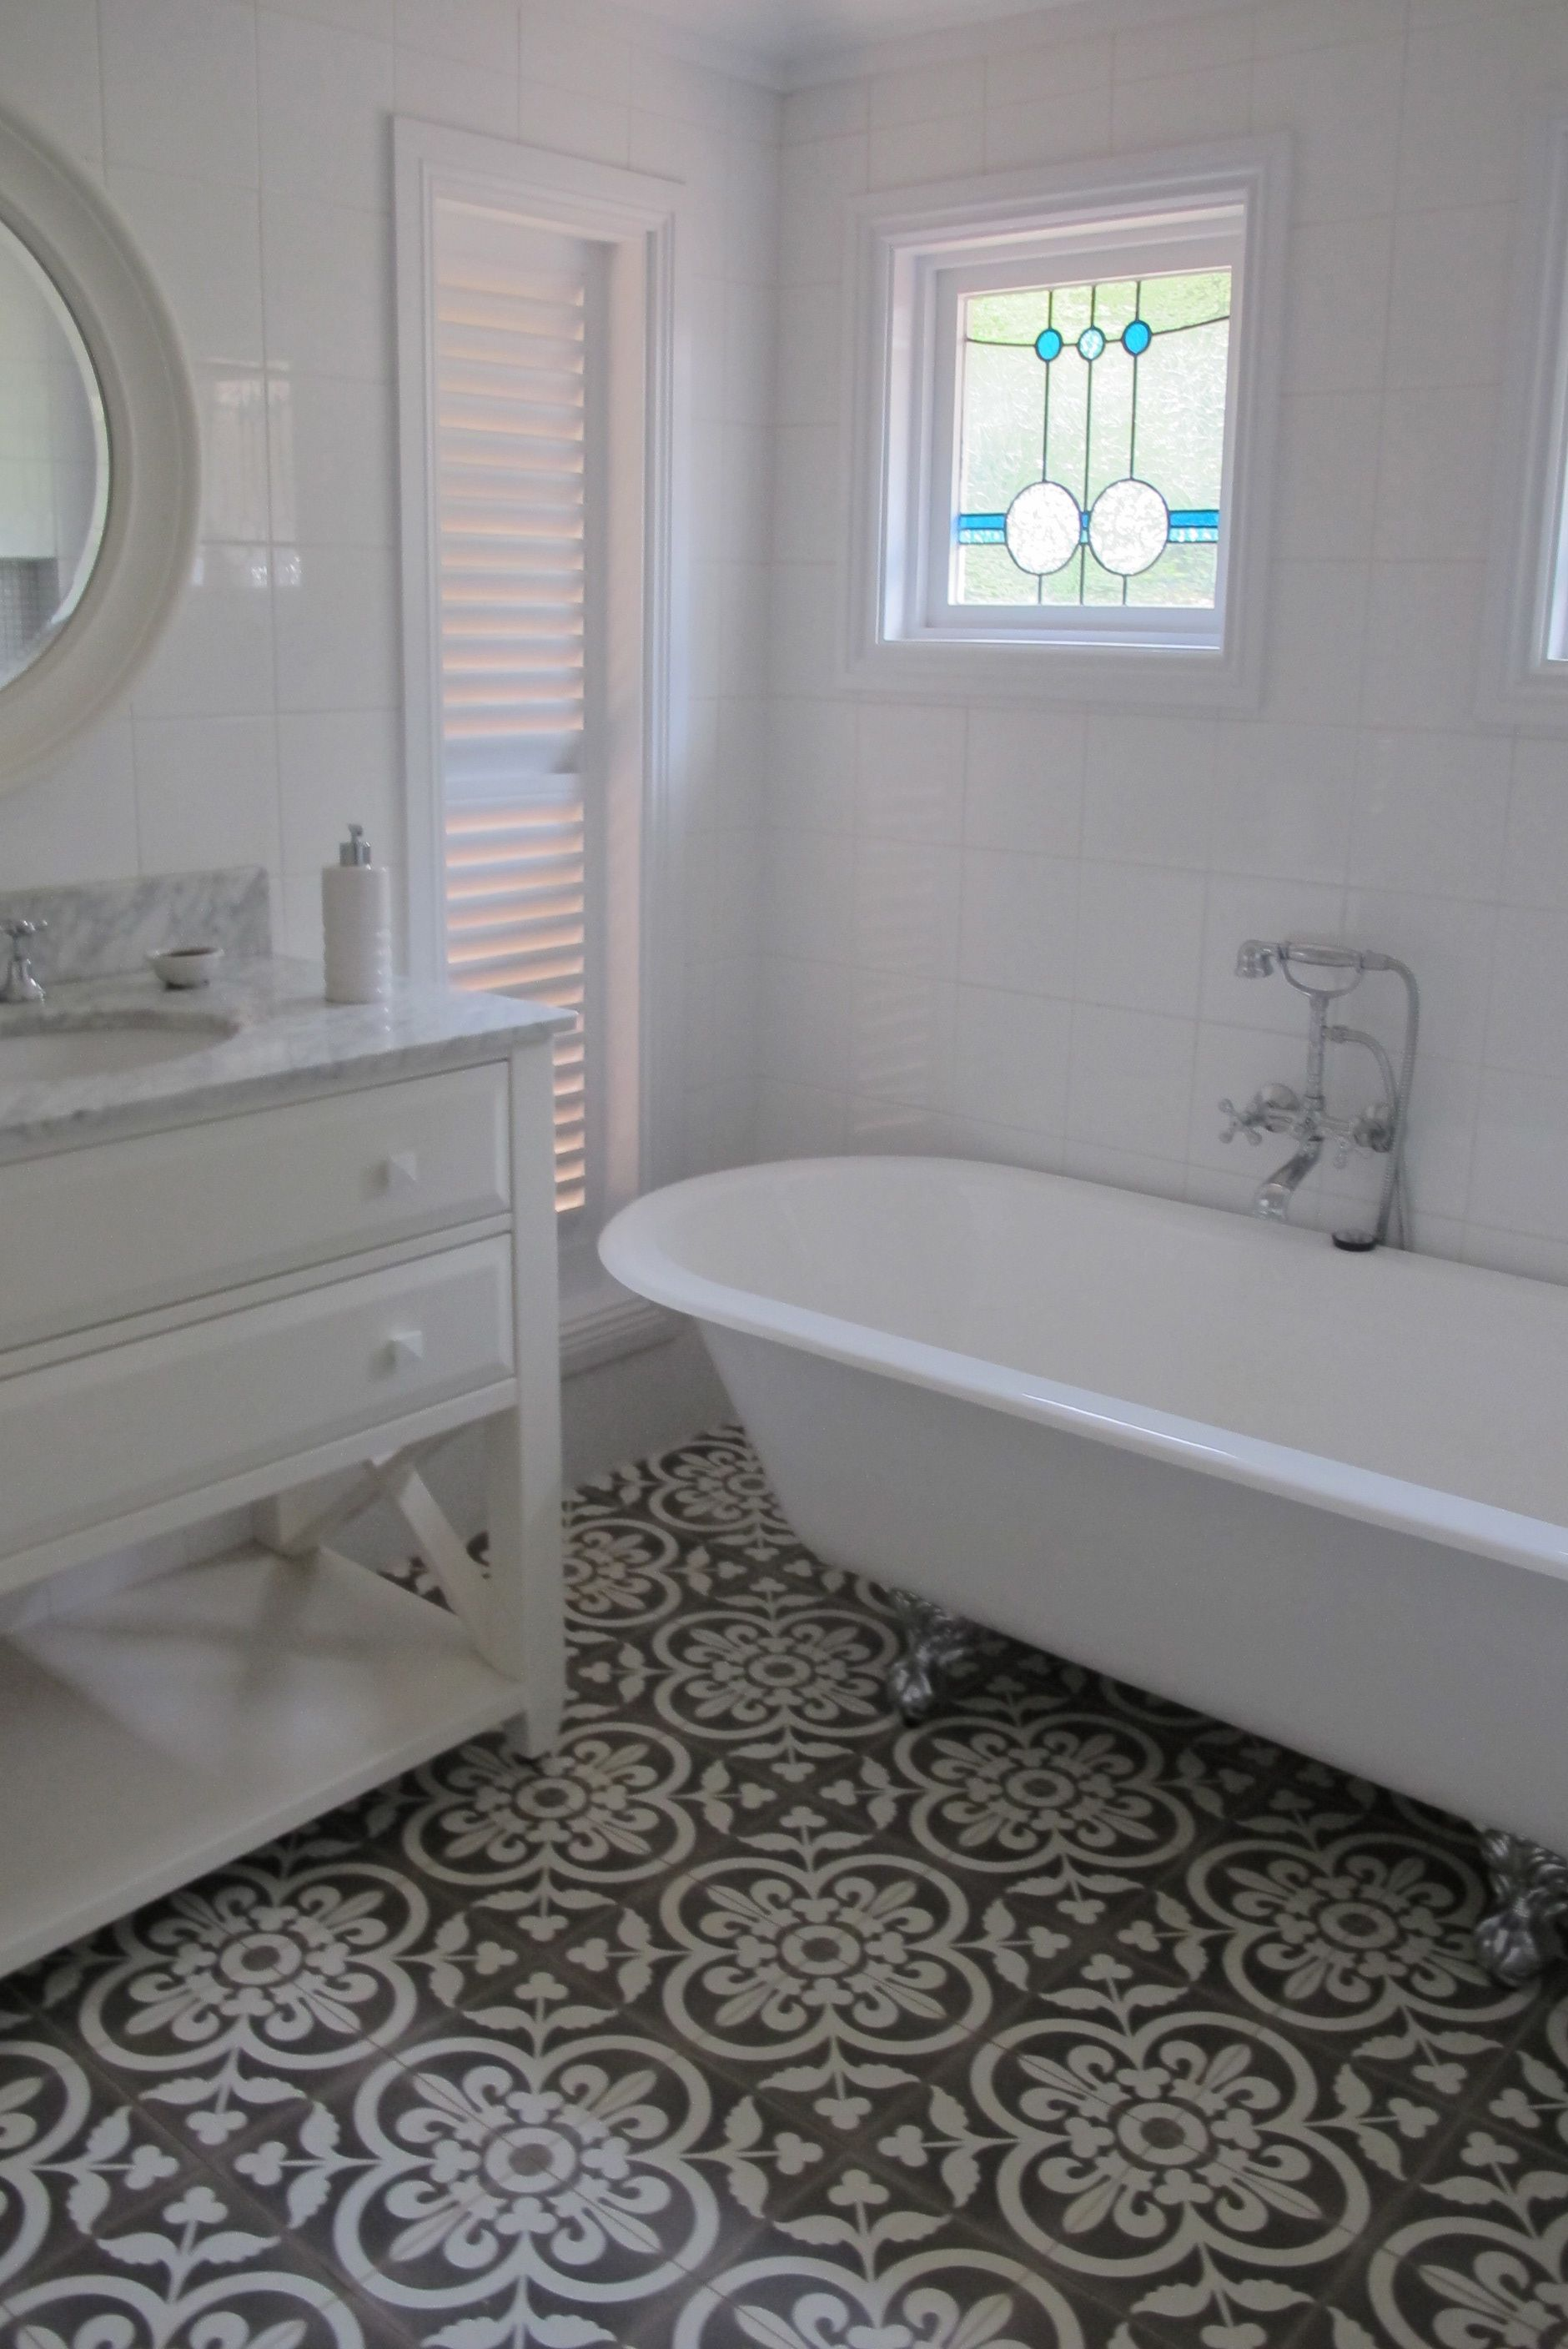 Cement bathroom tiles - Why You Should Add A Tile Or Mosaic Feature To Your Interiors Cement Tiles Bathroombathroom